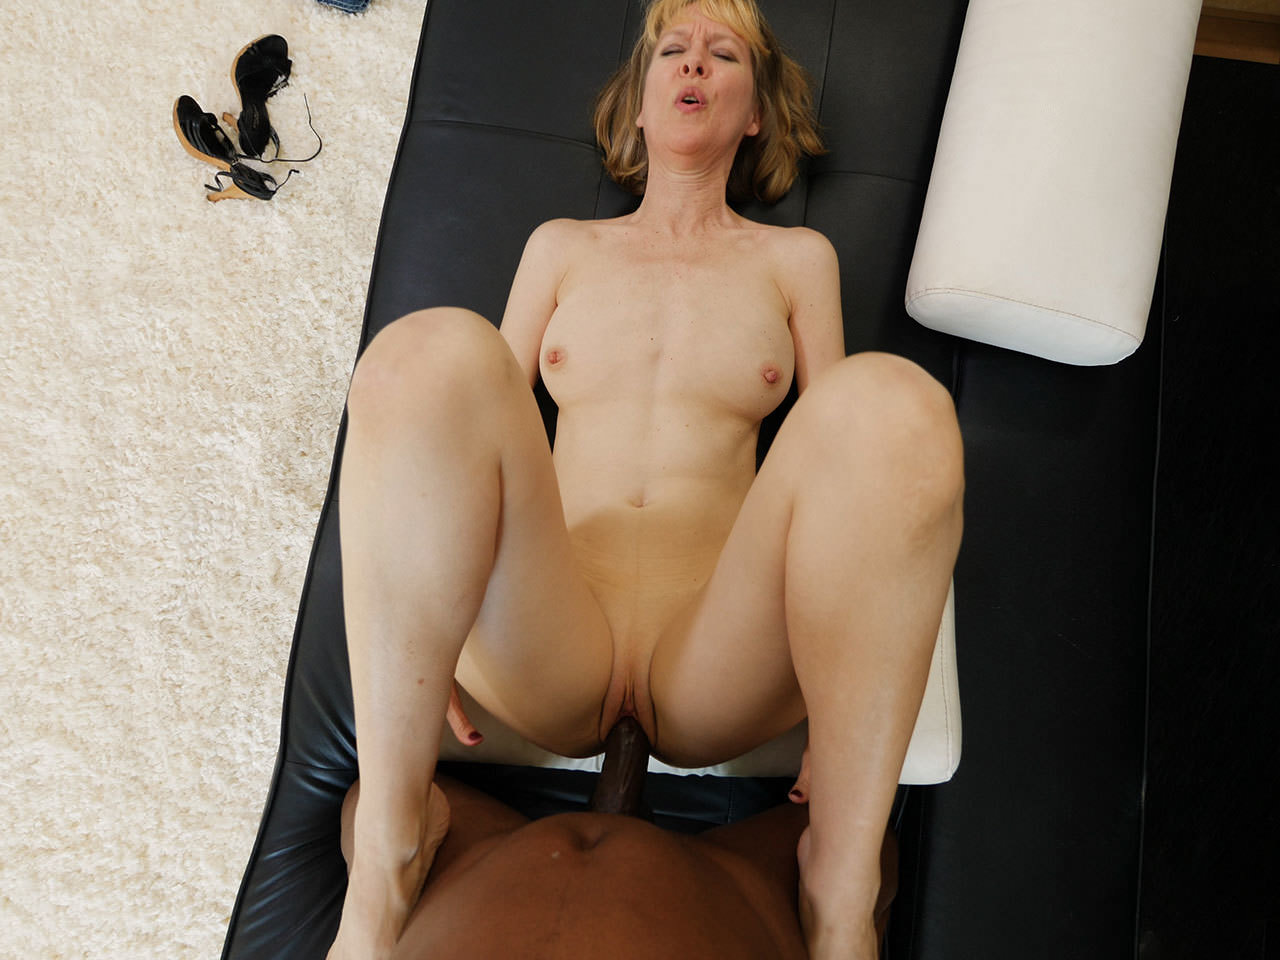 Top Rated,Interracial,Milf,Old+Young,HD Videos,Casting,Young,Black MILF,Black,MILF Young,MILF Fucks Young Guy,Mature Fucks,MILF Fucks Young,Mature Black MILF,Mature Young,Young Guy,Mature Fucks Young,MILF Fucks Black,Mature Fucks Young Guy,Casting Couch HD